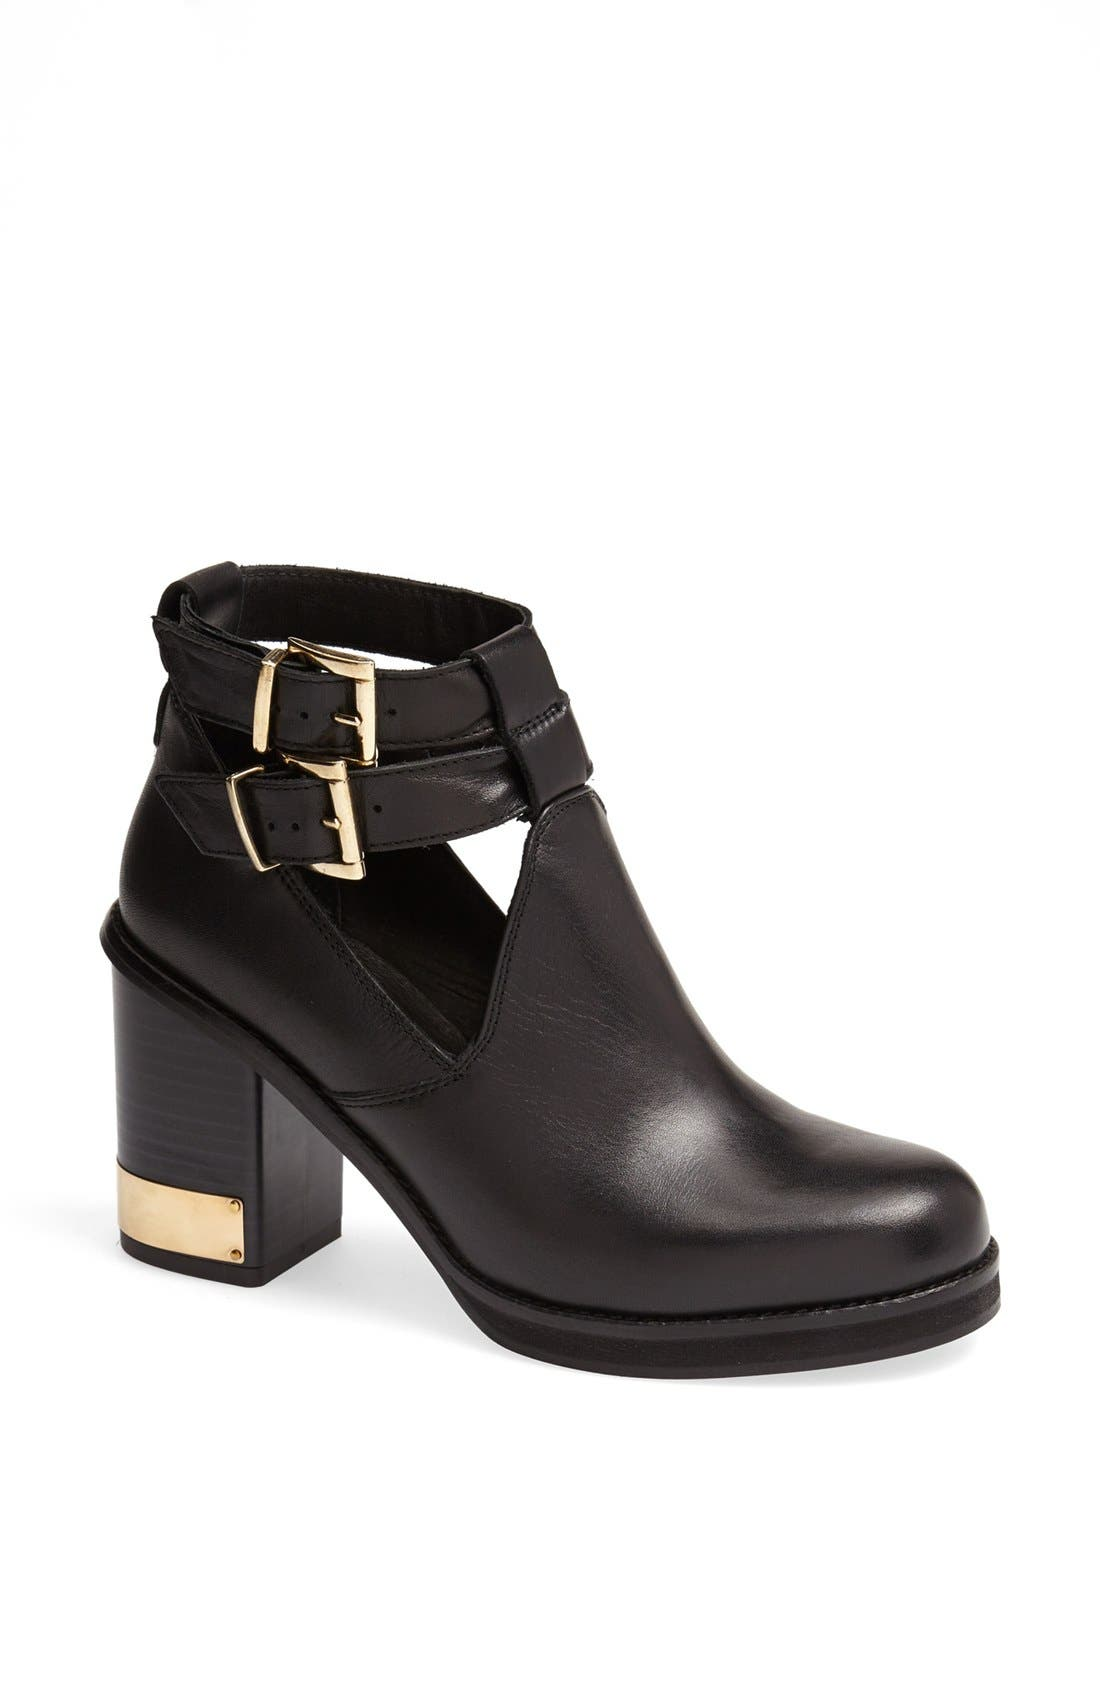 Main Image - Topshop 'All Yours' Ankle Boot